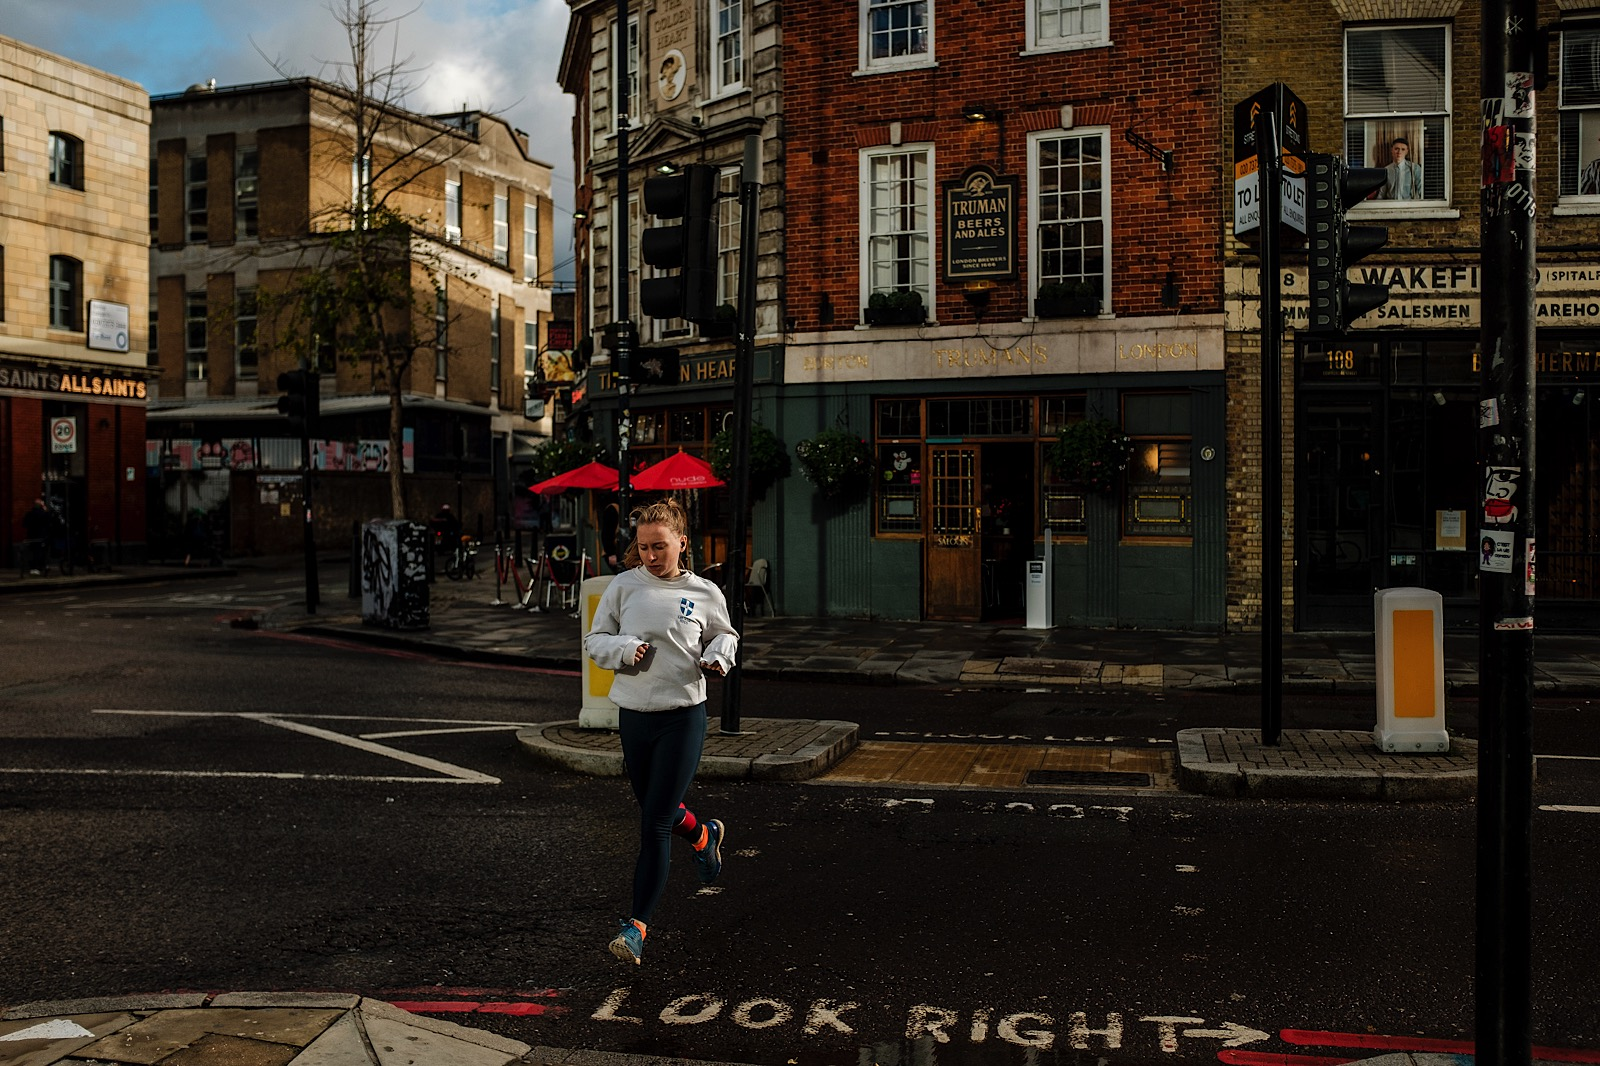 Street Photography showing female runner at pedestrian crossing in London